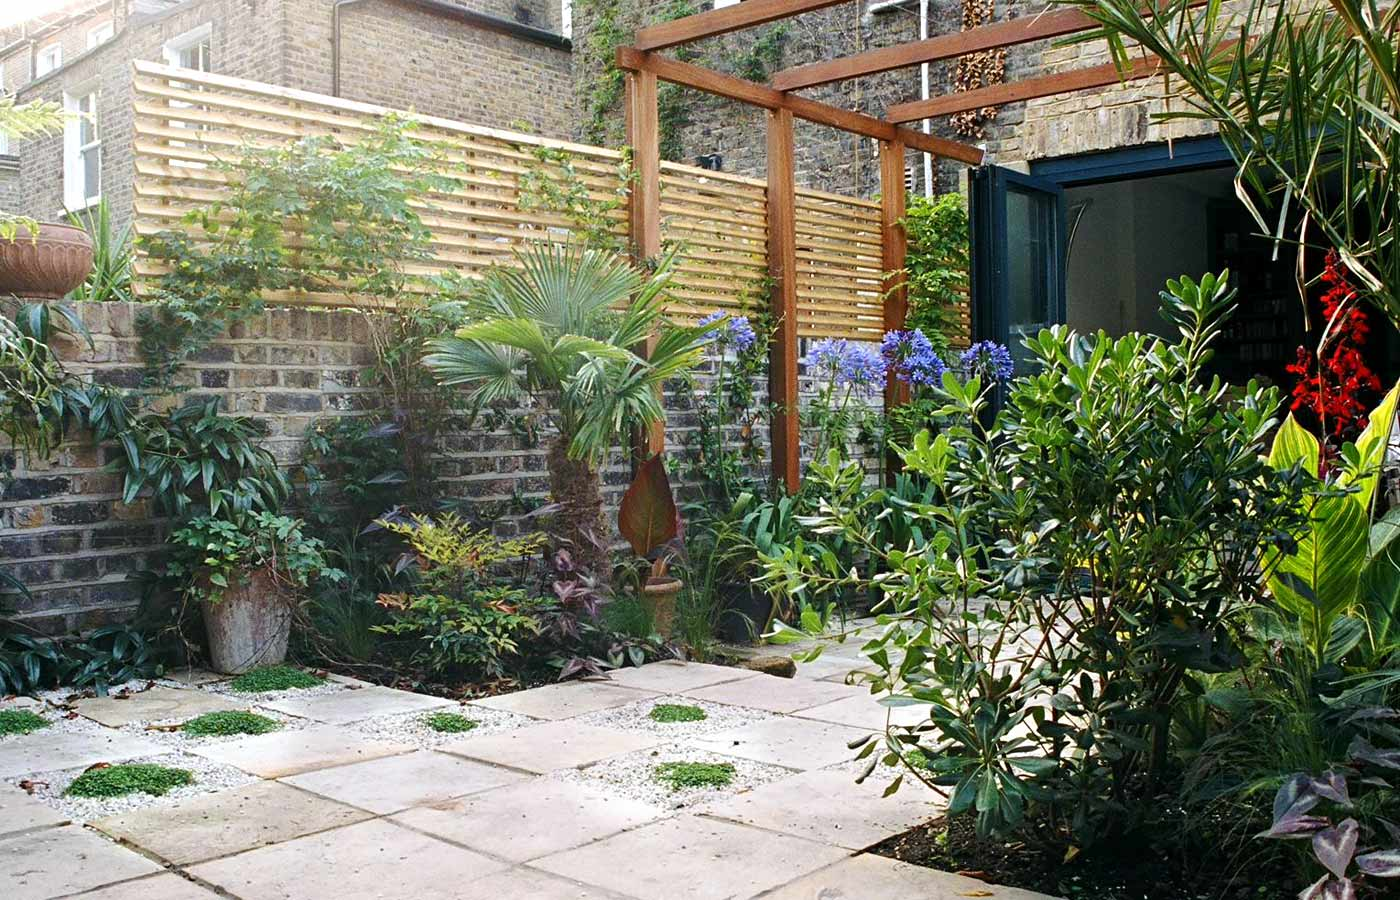 Courtyard garden design north london garden design for Courtyard landscaping